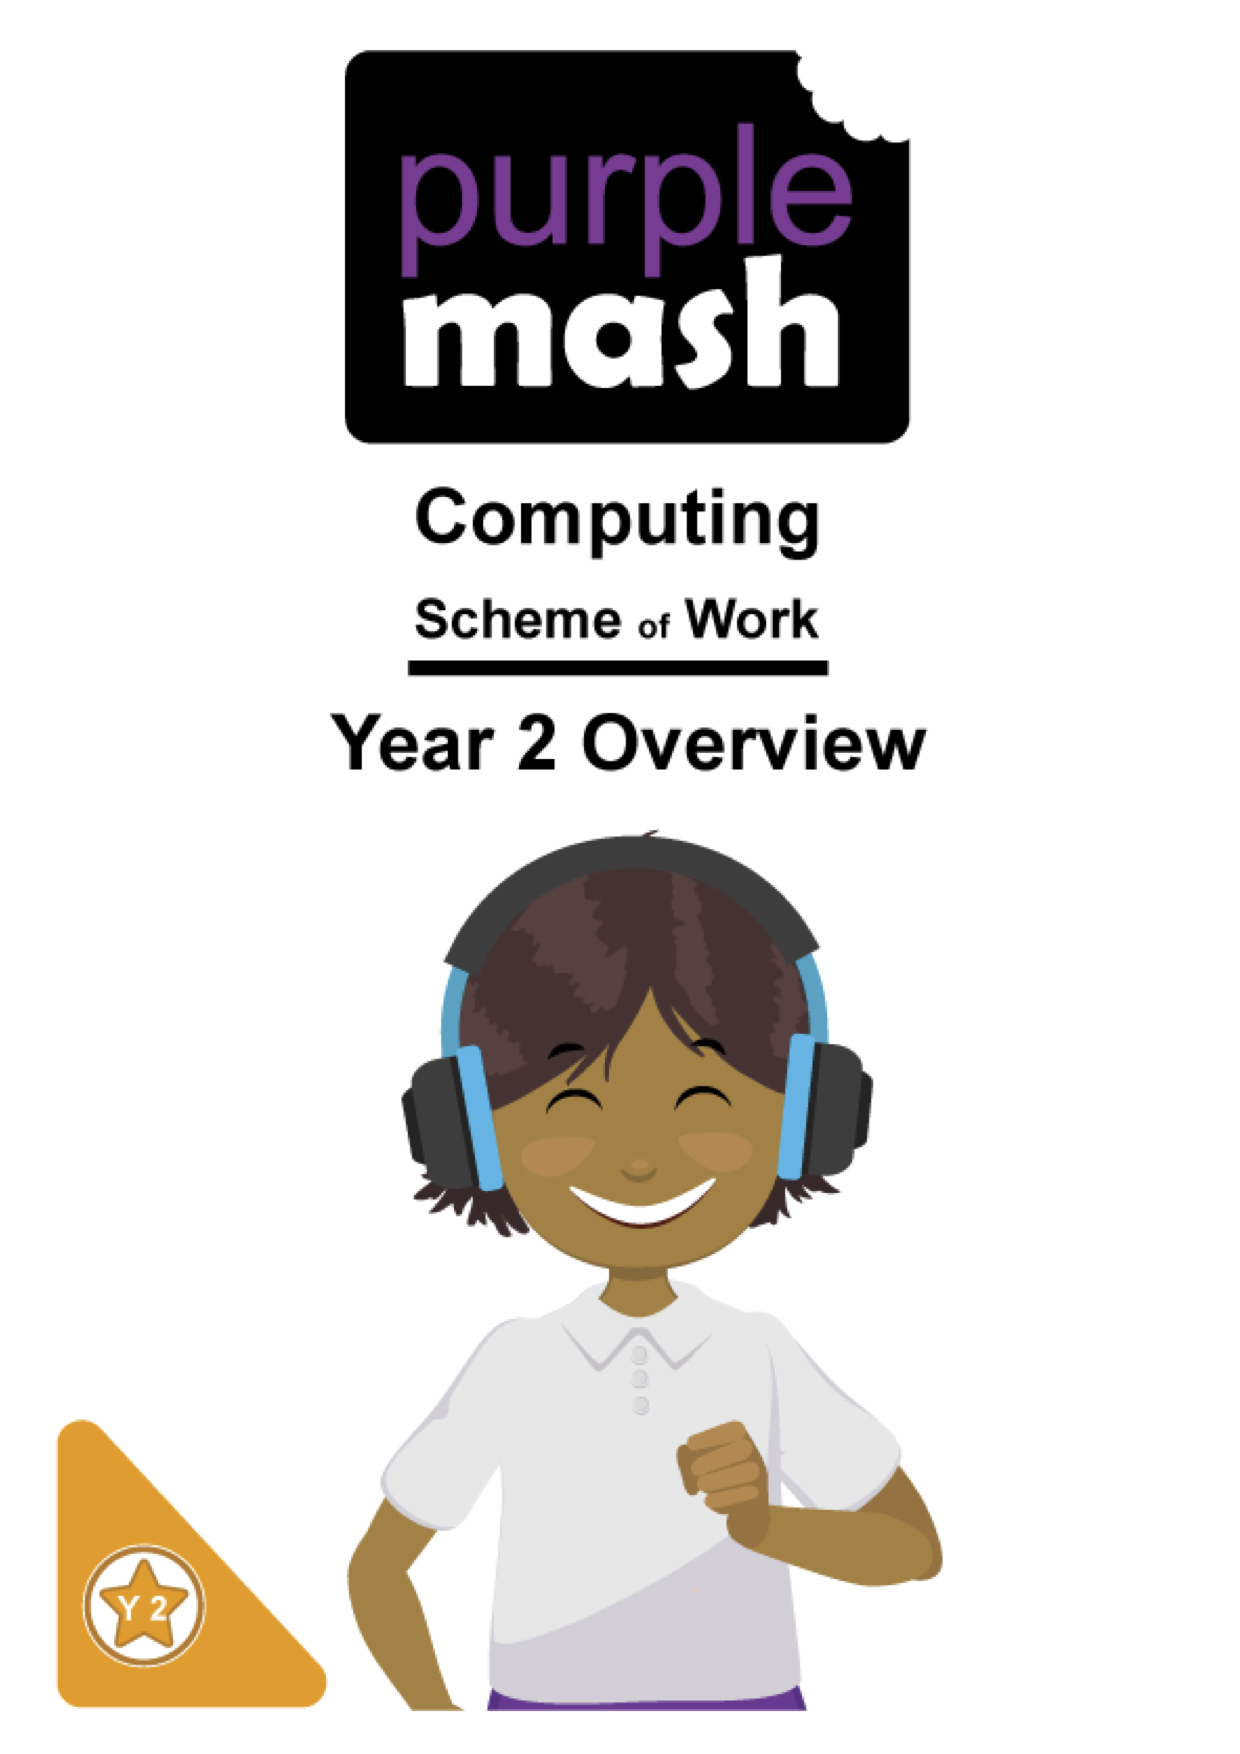 Purple Mash Scheme of Work Year 2 Overview.jpg